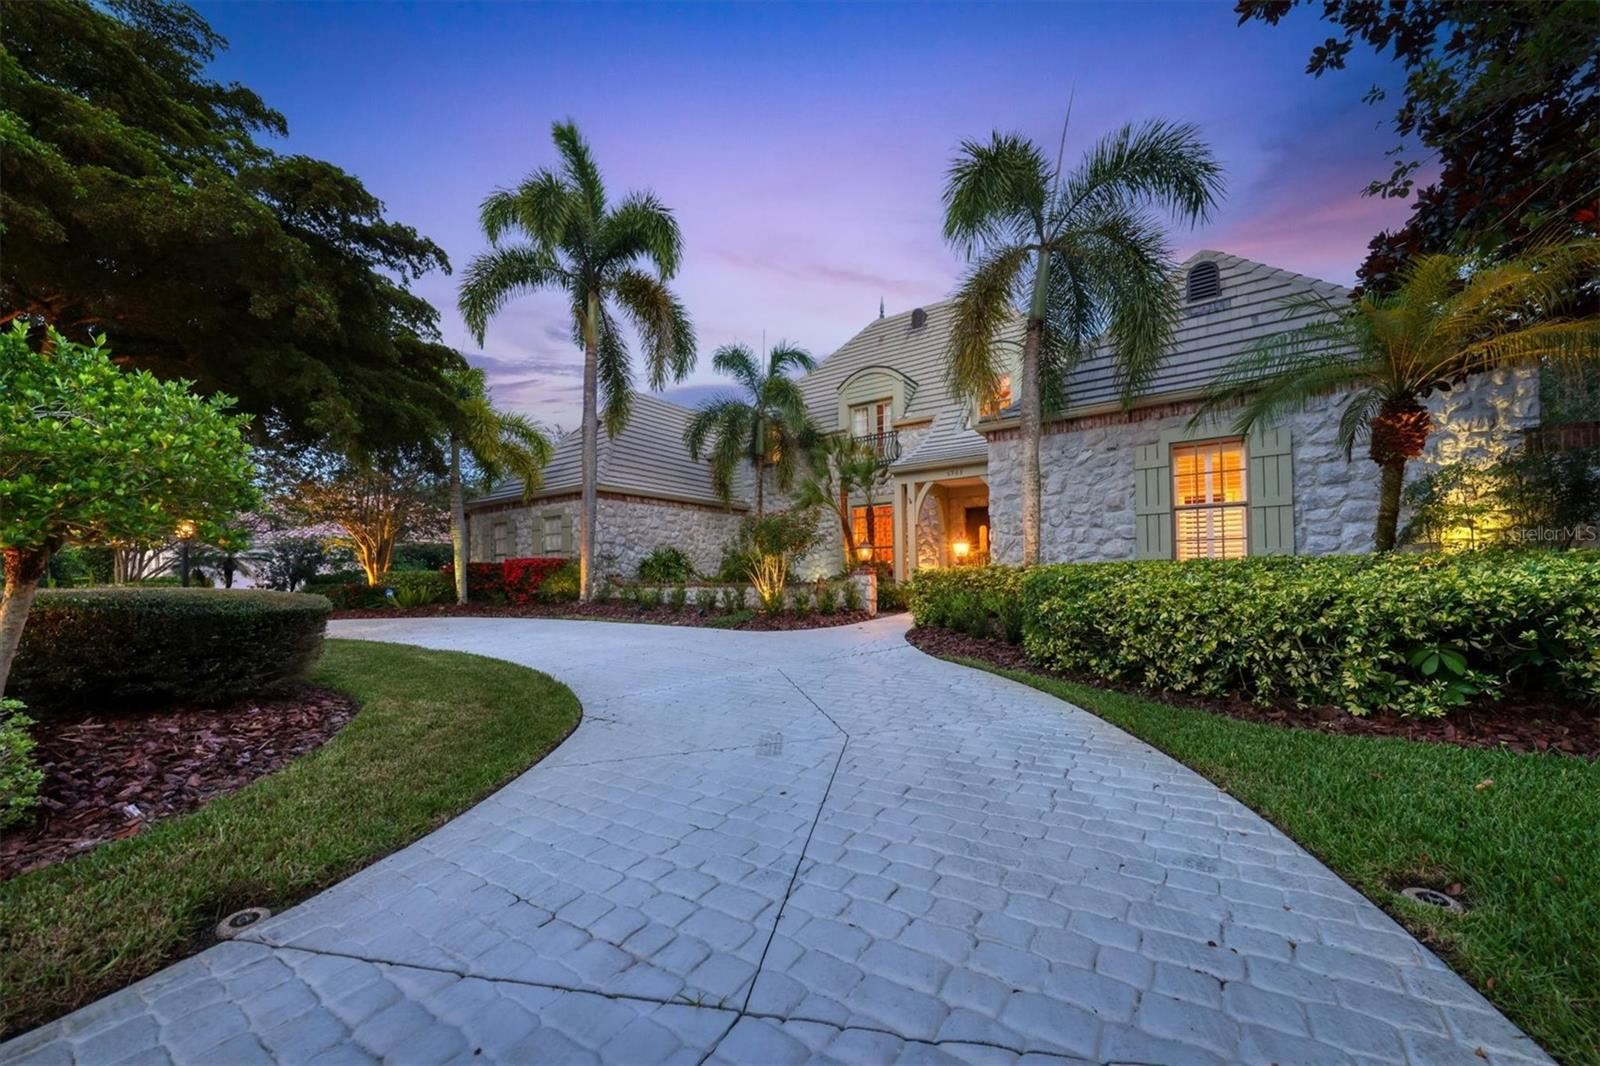 Photo of 6963 WESTCHESTER CIRCLE, LAKEWOOD RANCH, FL 34202 (MLS # A4506647)